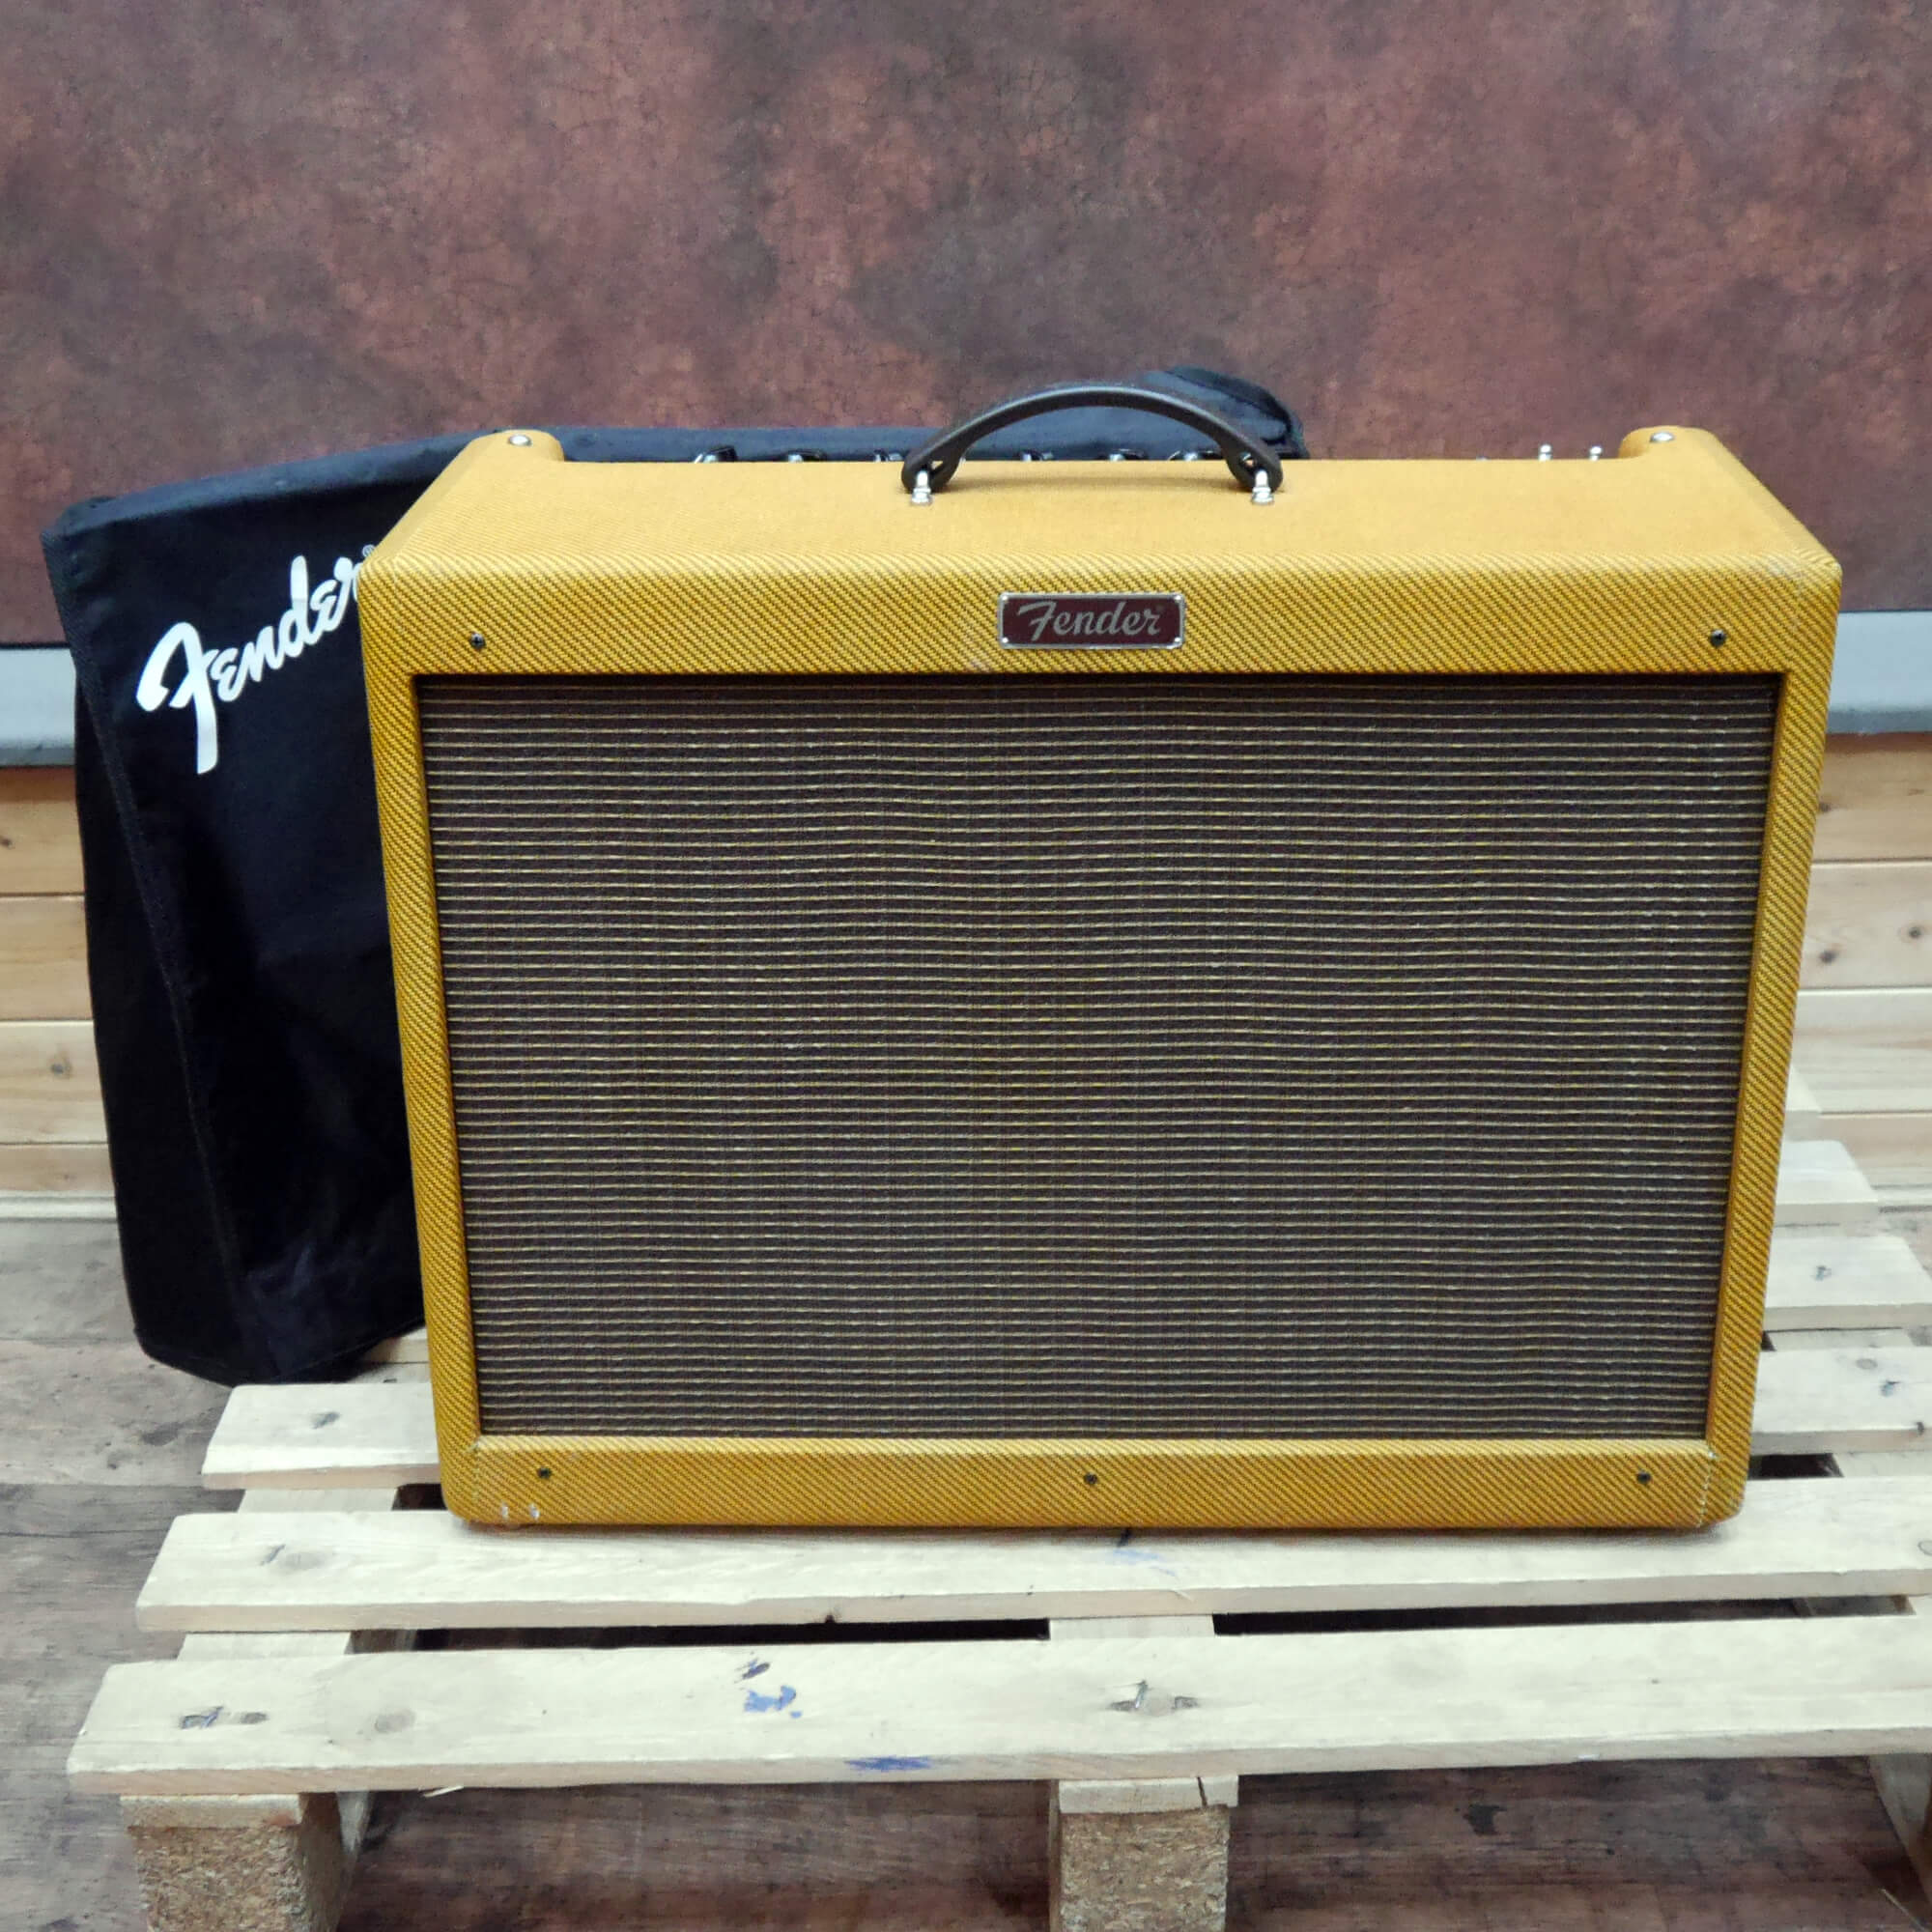 Fender Hotrod Deluxe Tweed Ltd Ed w/Cover - 2nd Hand **UK SHIPPING ONLY**